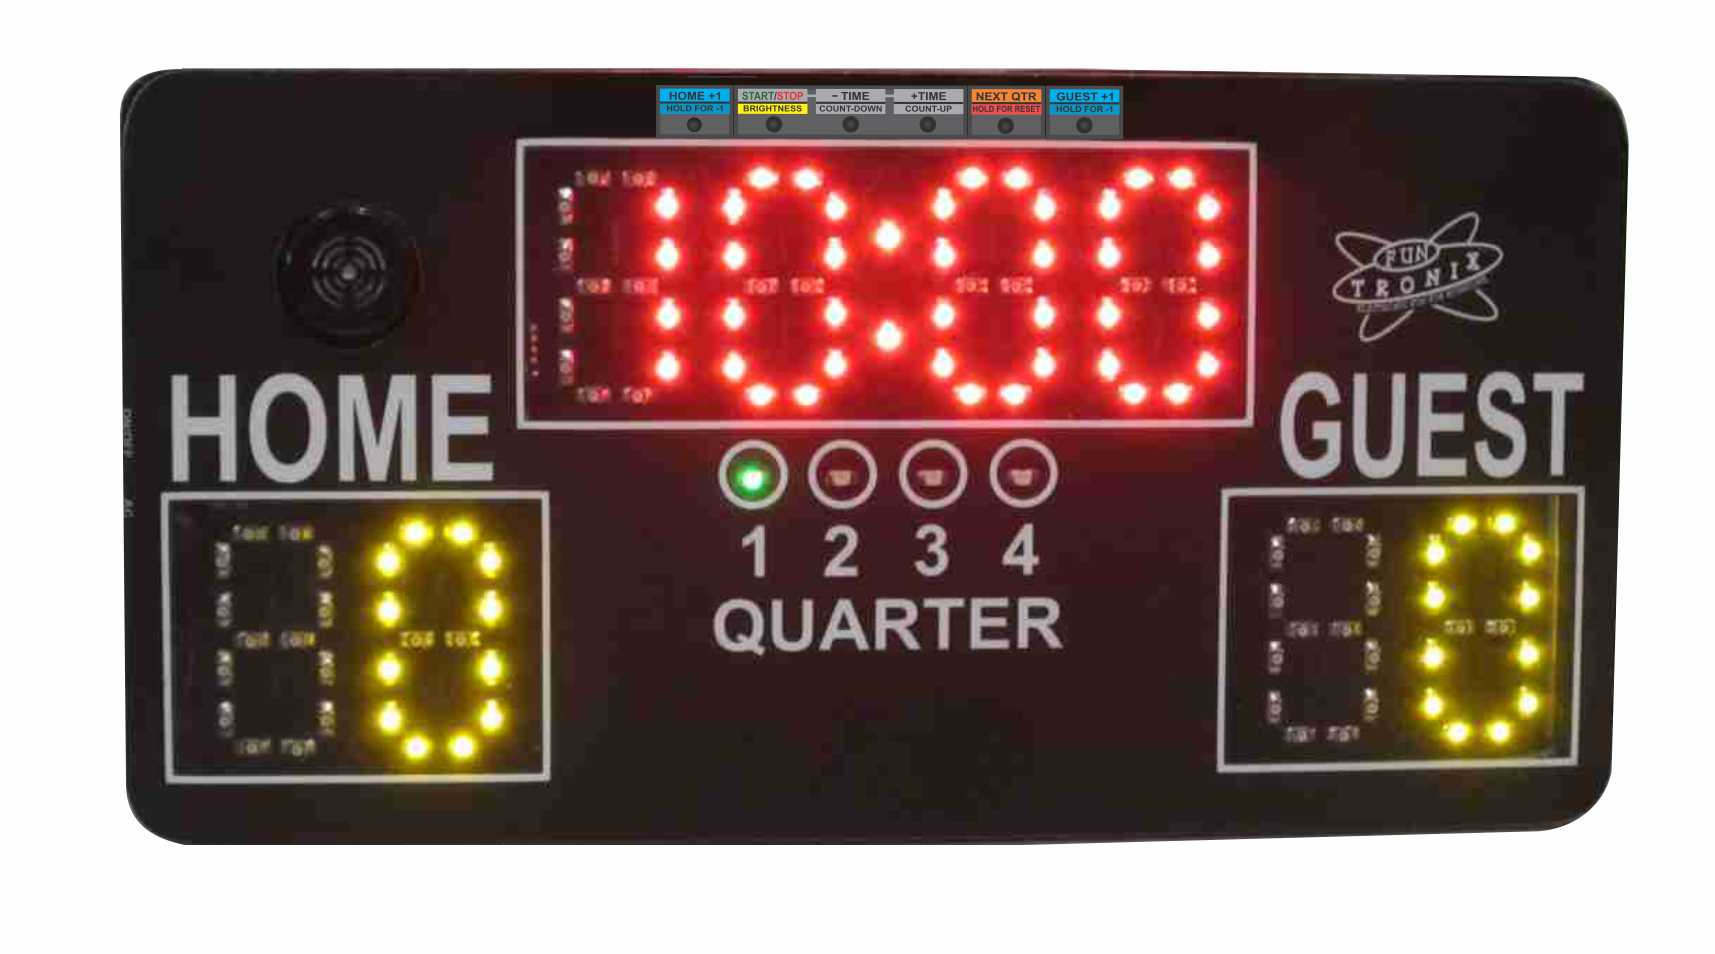 SNT-50 family of portable scoreboards